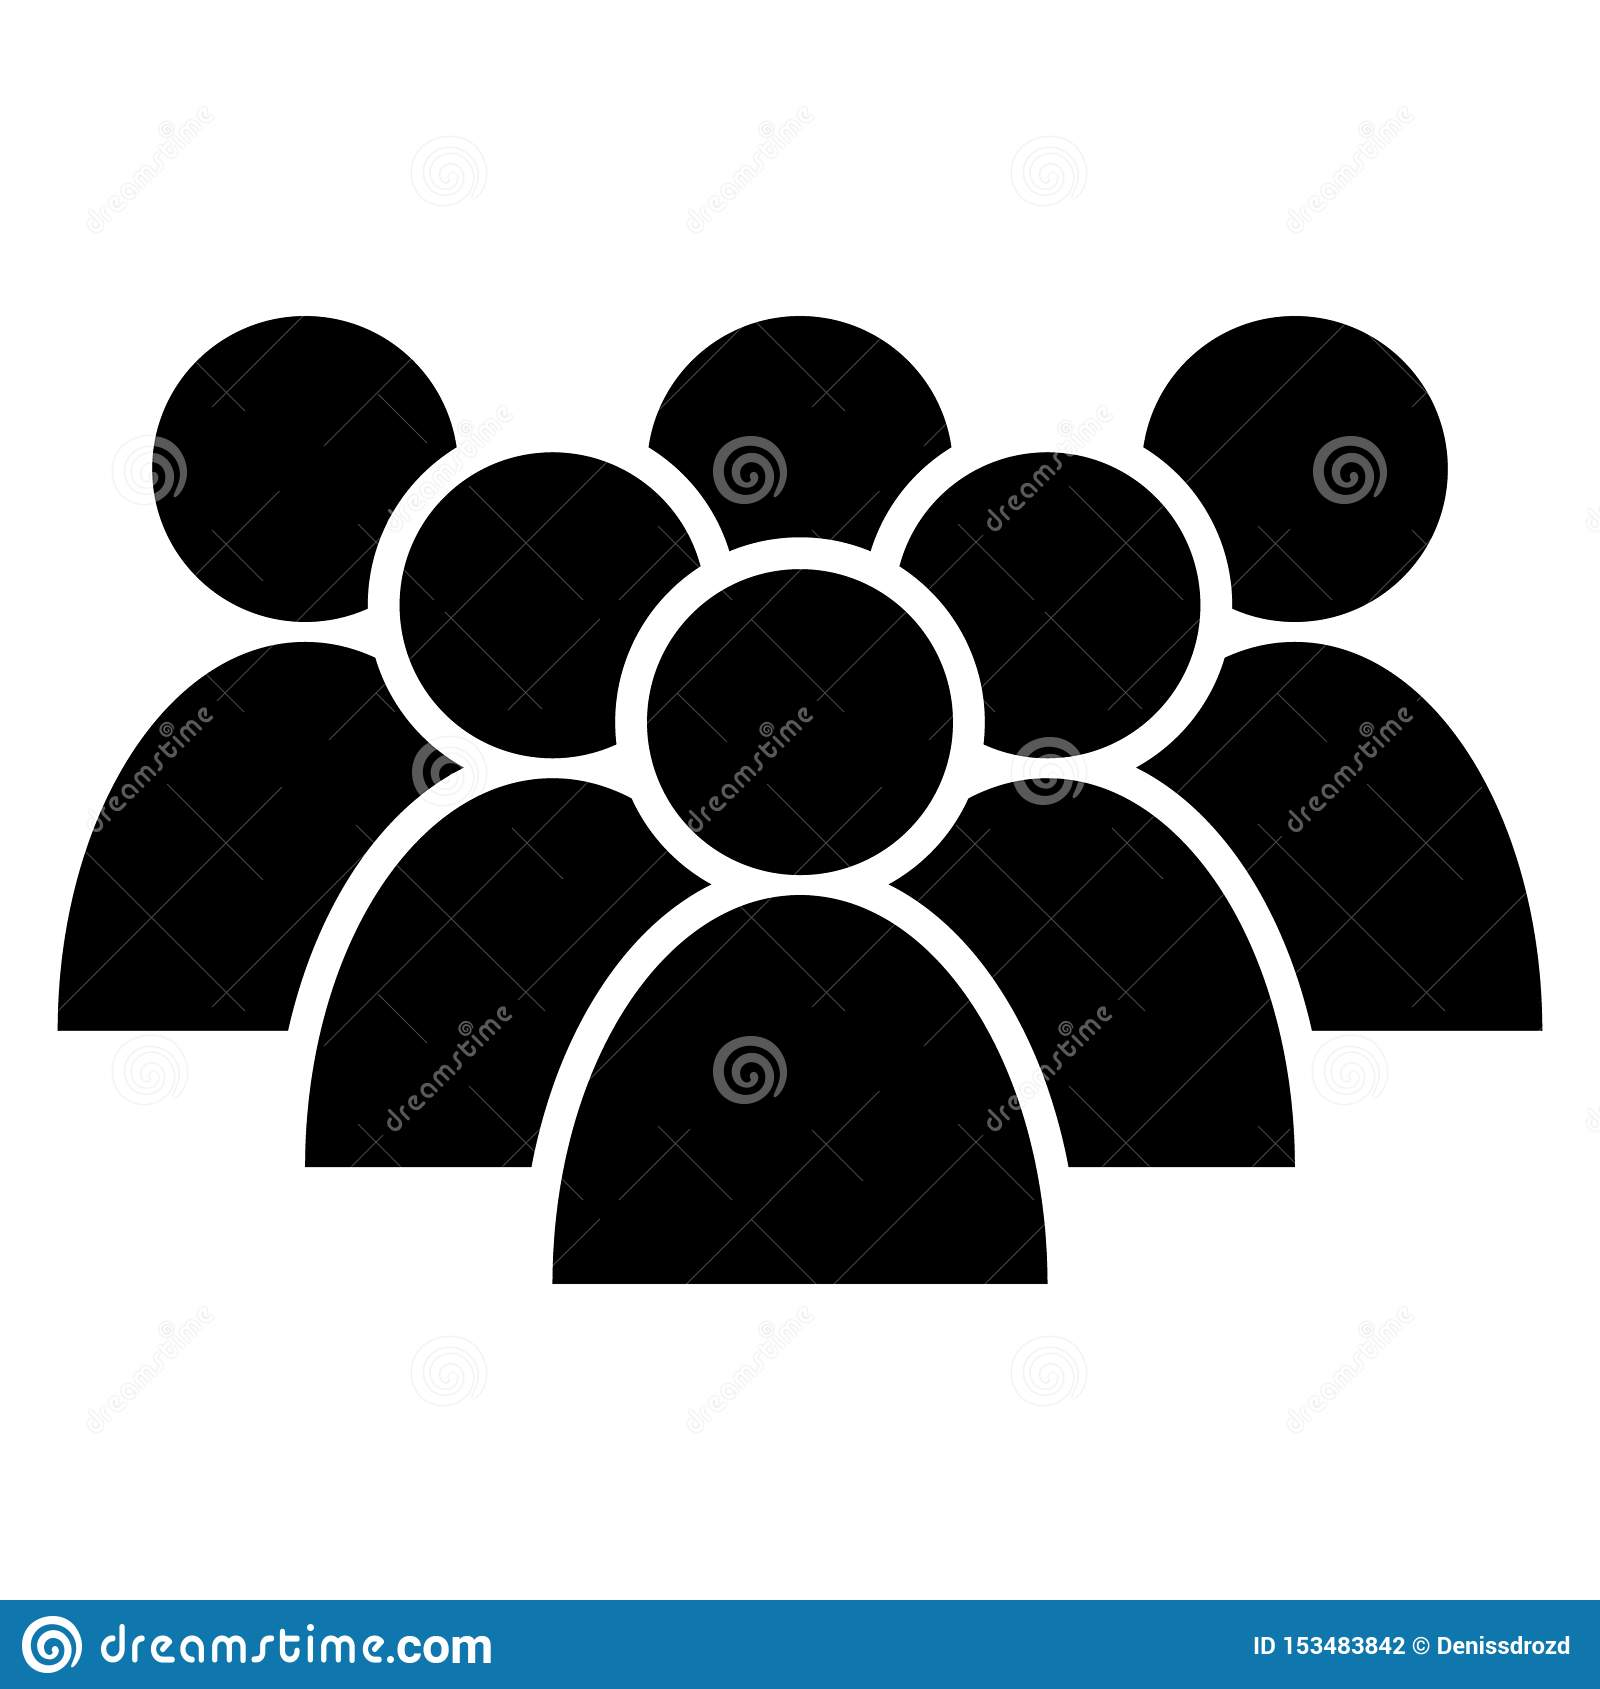 People vector icon . Group of people symbol illustration. businessman group logo. Multiple users silhouette icon.